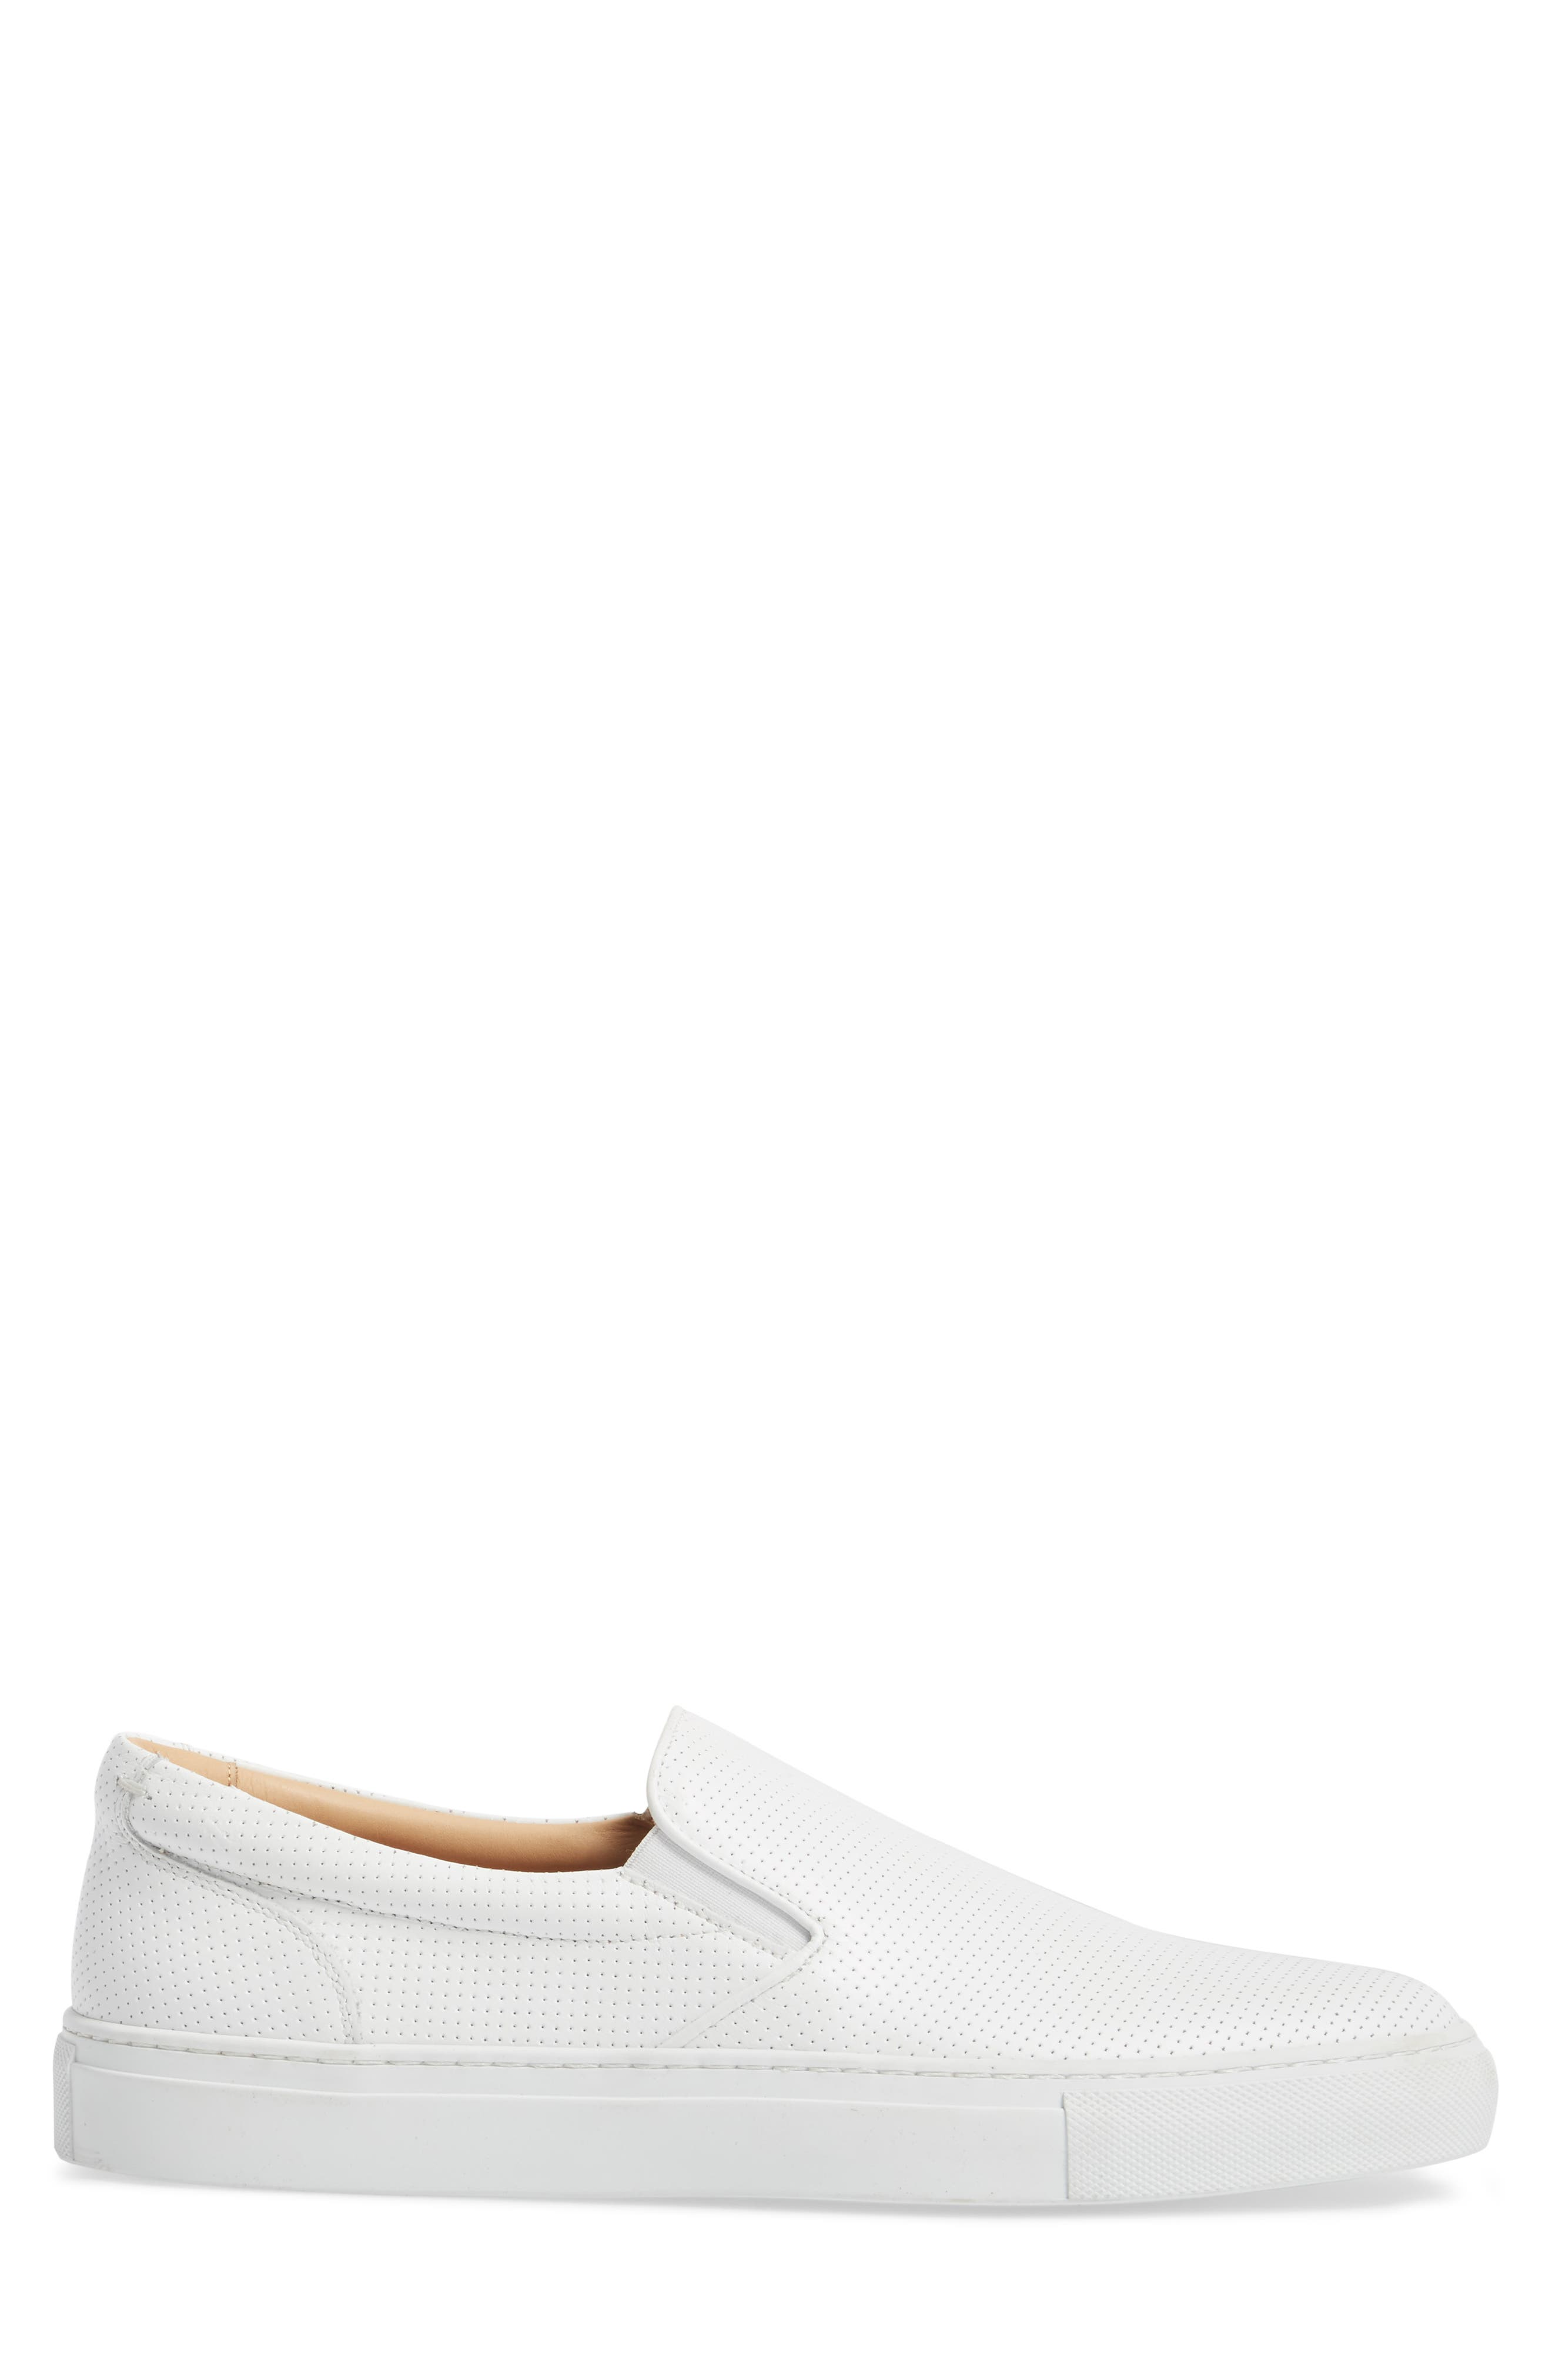 Wooster Slip-On Sneaker,                             Alternate thumbnail 3, color,                             WHITE PERFORATED LEATHER